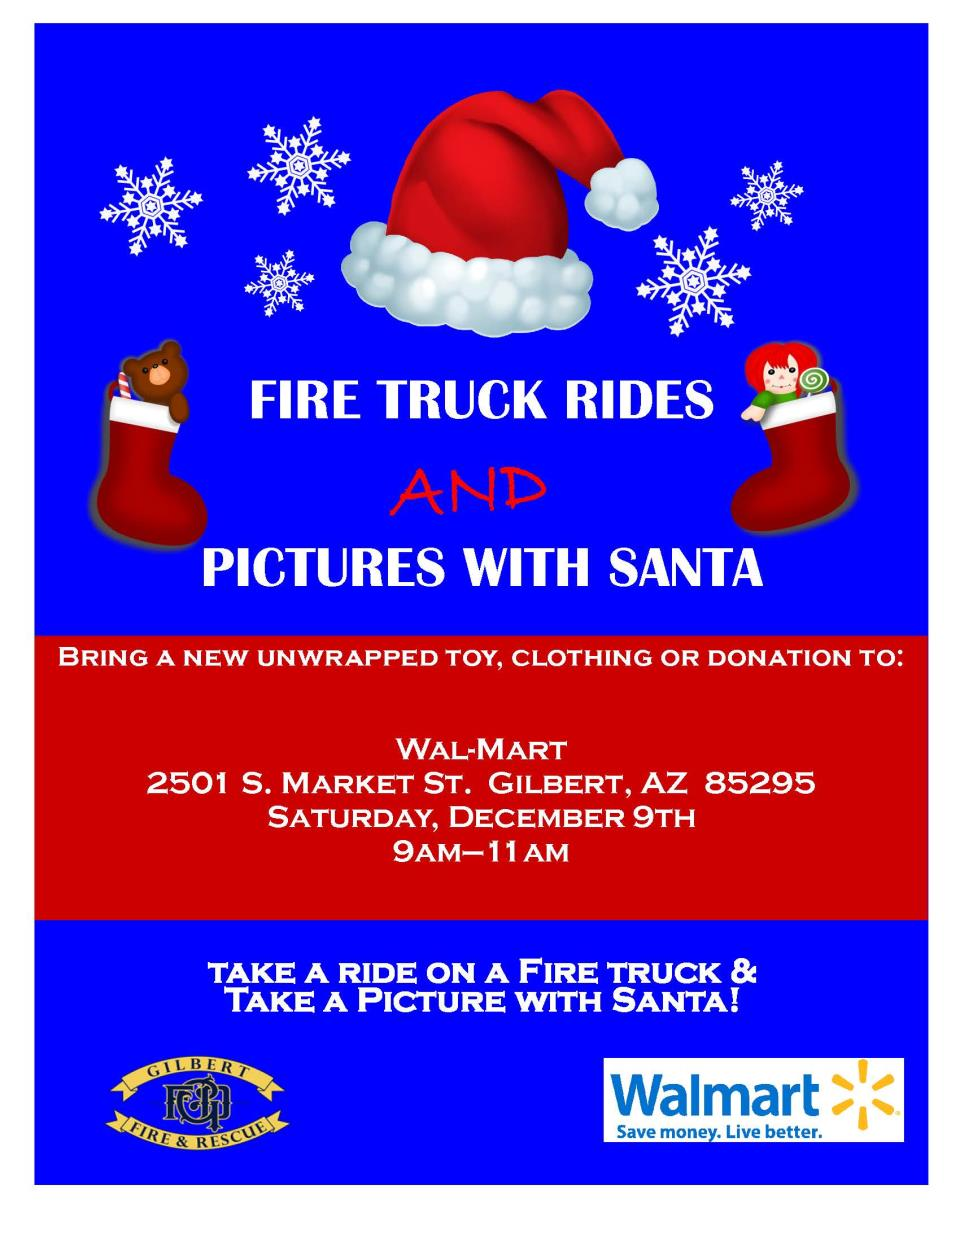 Fire Truck Rides and Photos with Santa Event